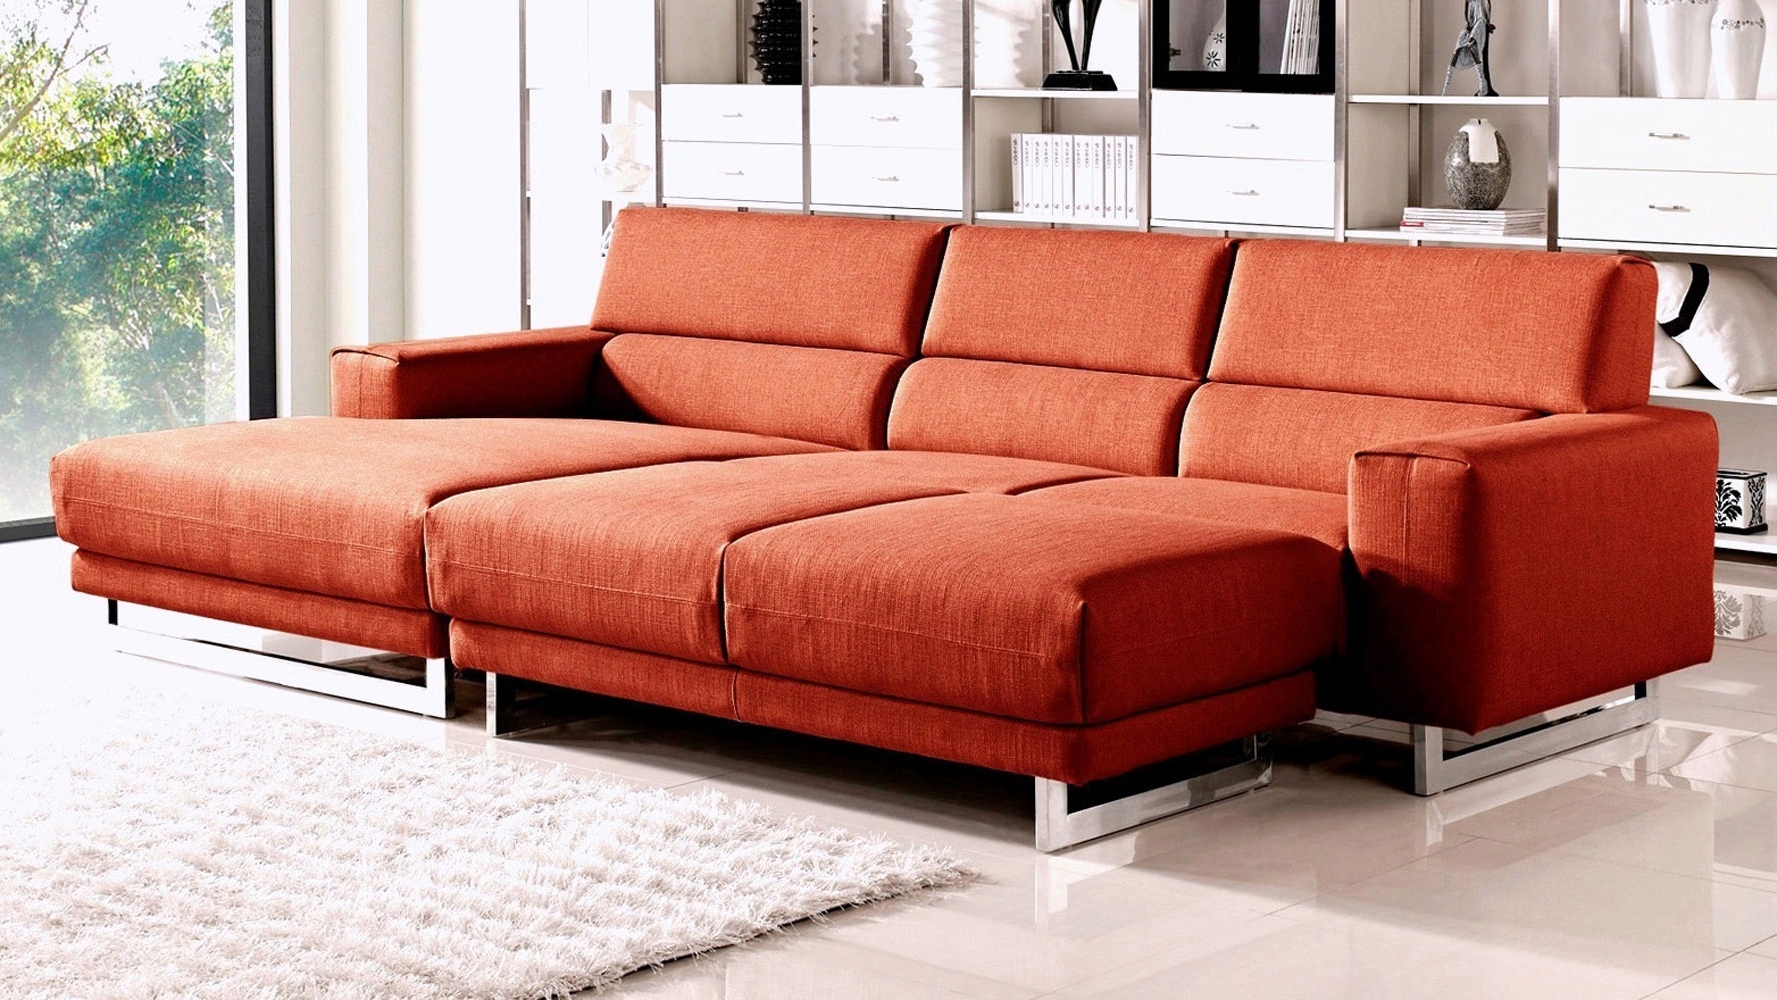 Ottoman Sleeper Sofa, Popular Comfortable Sectional Sofas Fabric Within Trendy Sectional Sleeper Sofas With Ottoman (View 3 of 15)